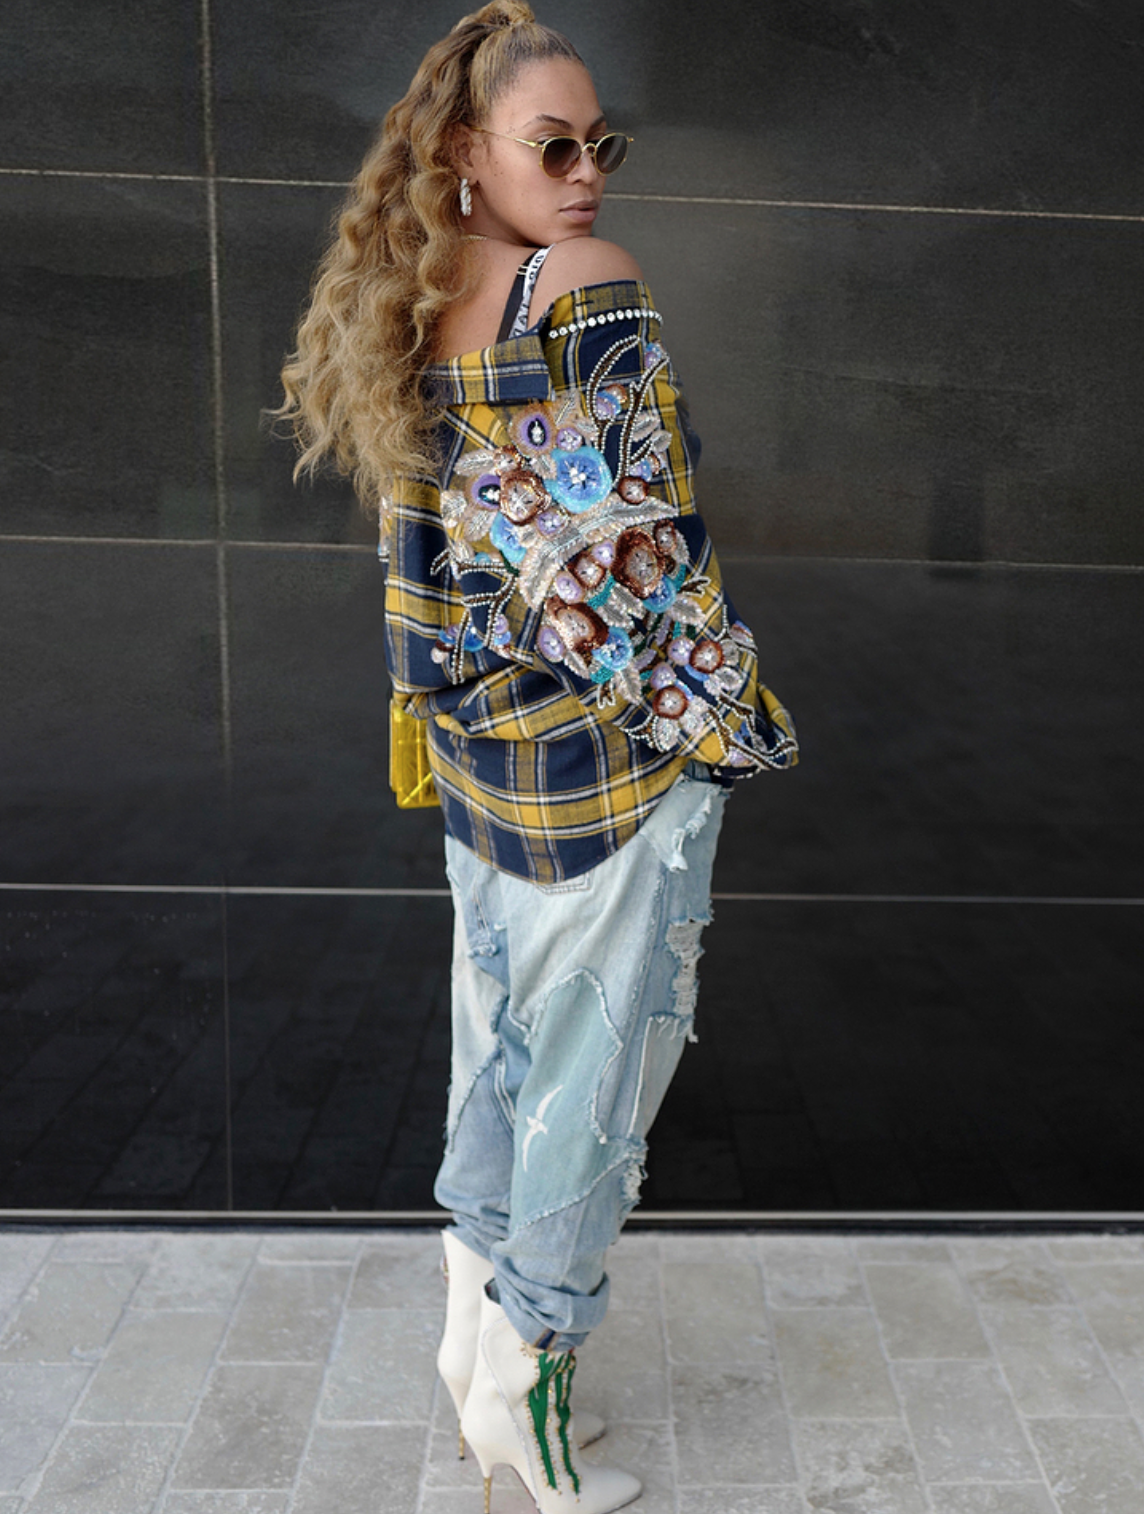 421b153d1acb8 Beyoncé Just Wore the Most Glam Flannel Shirt We ve Ever Seen ...